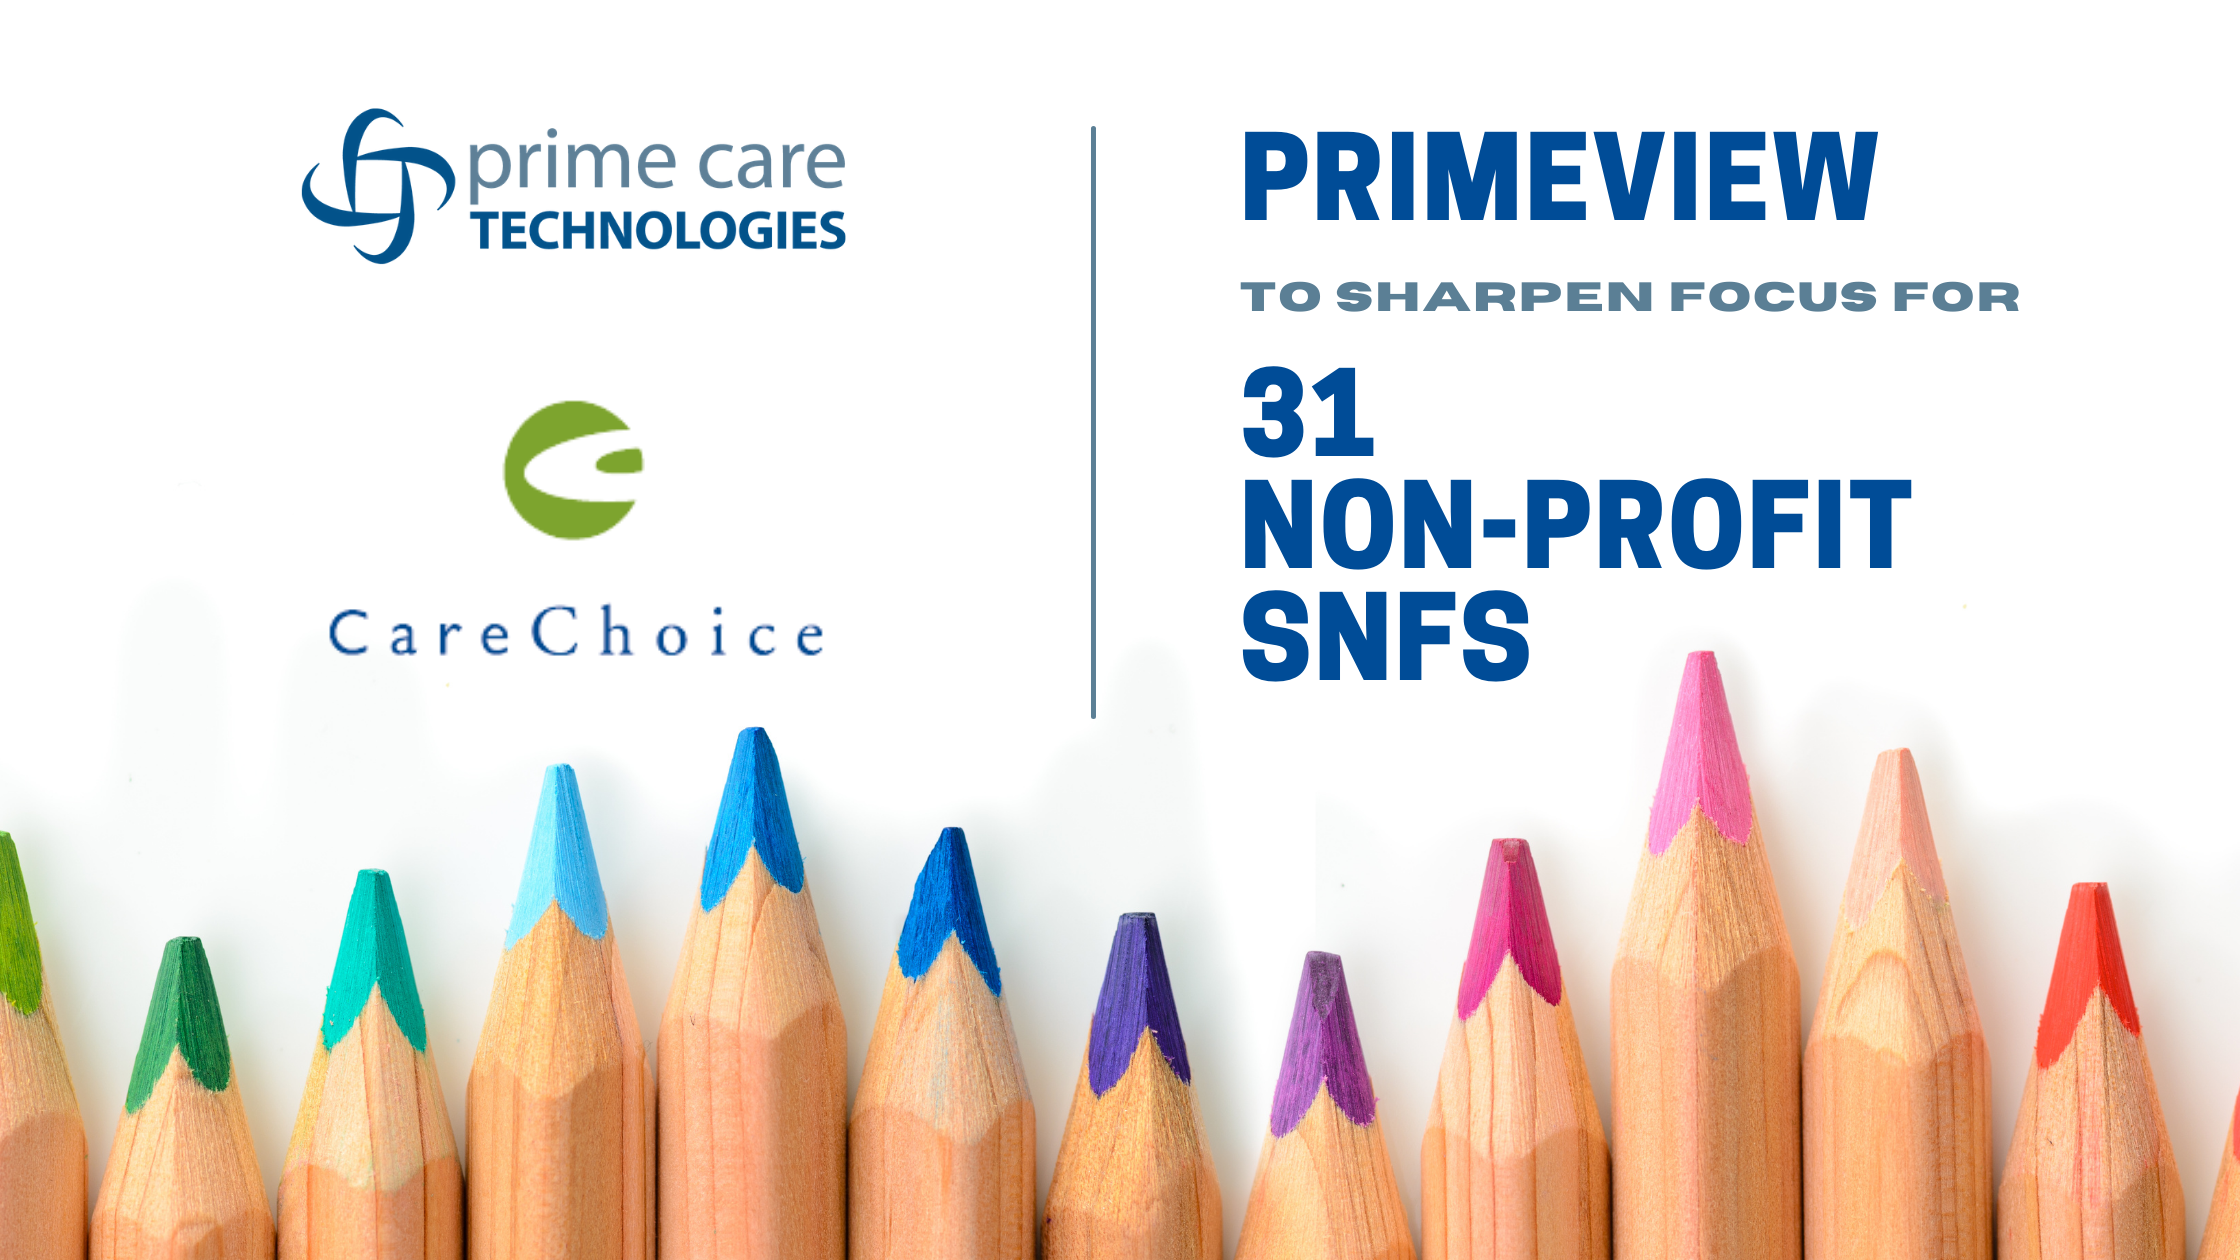 PrimeVIEW to Sharpen Focus for 31 Non-Profit SNFs in CareChoice Coop